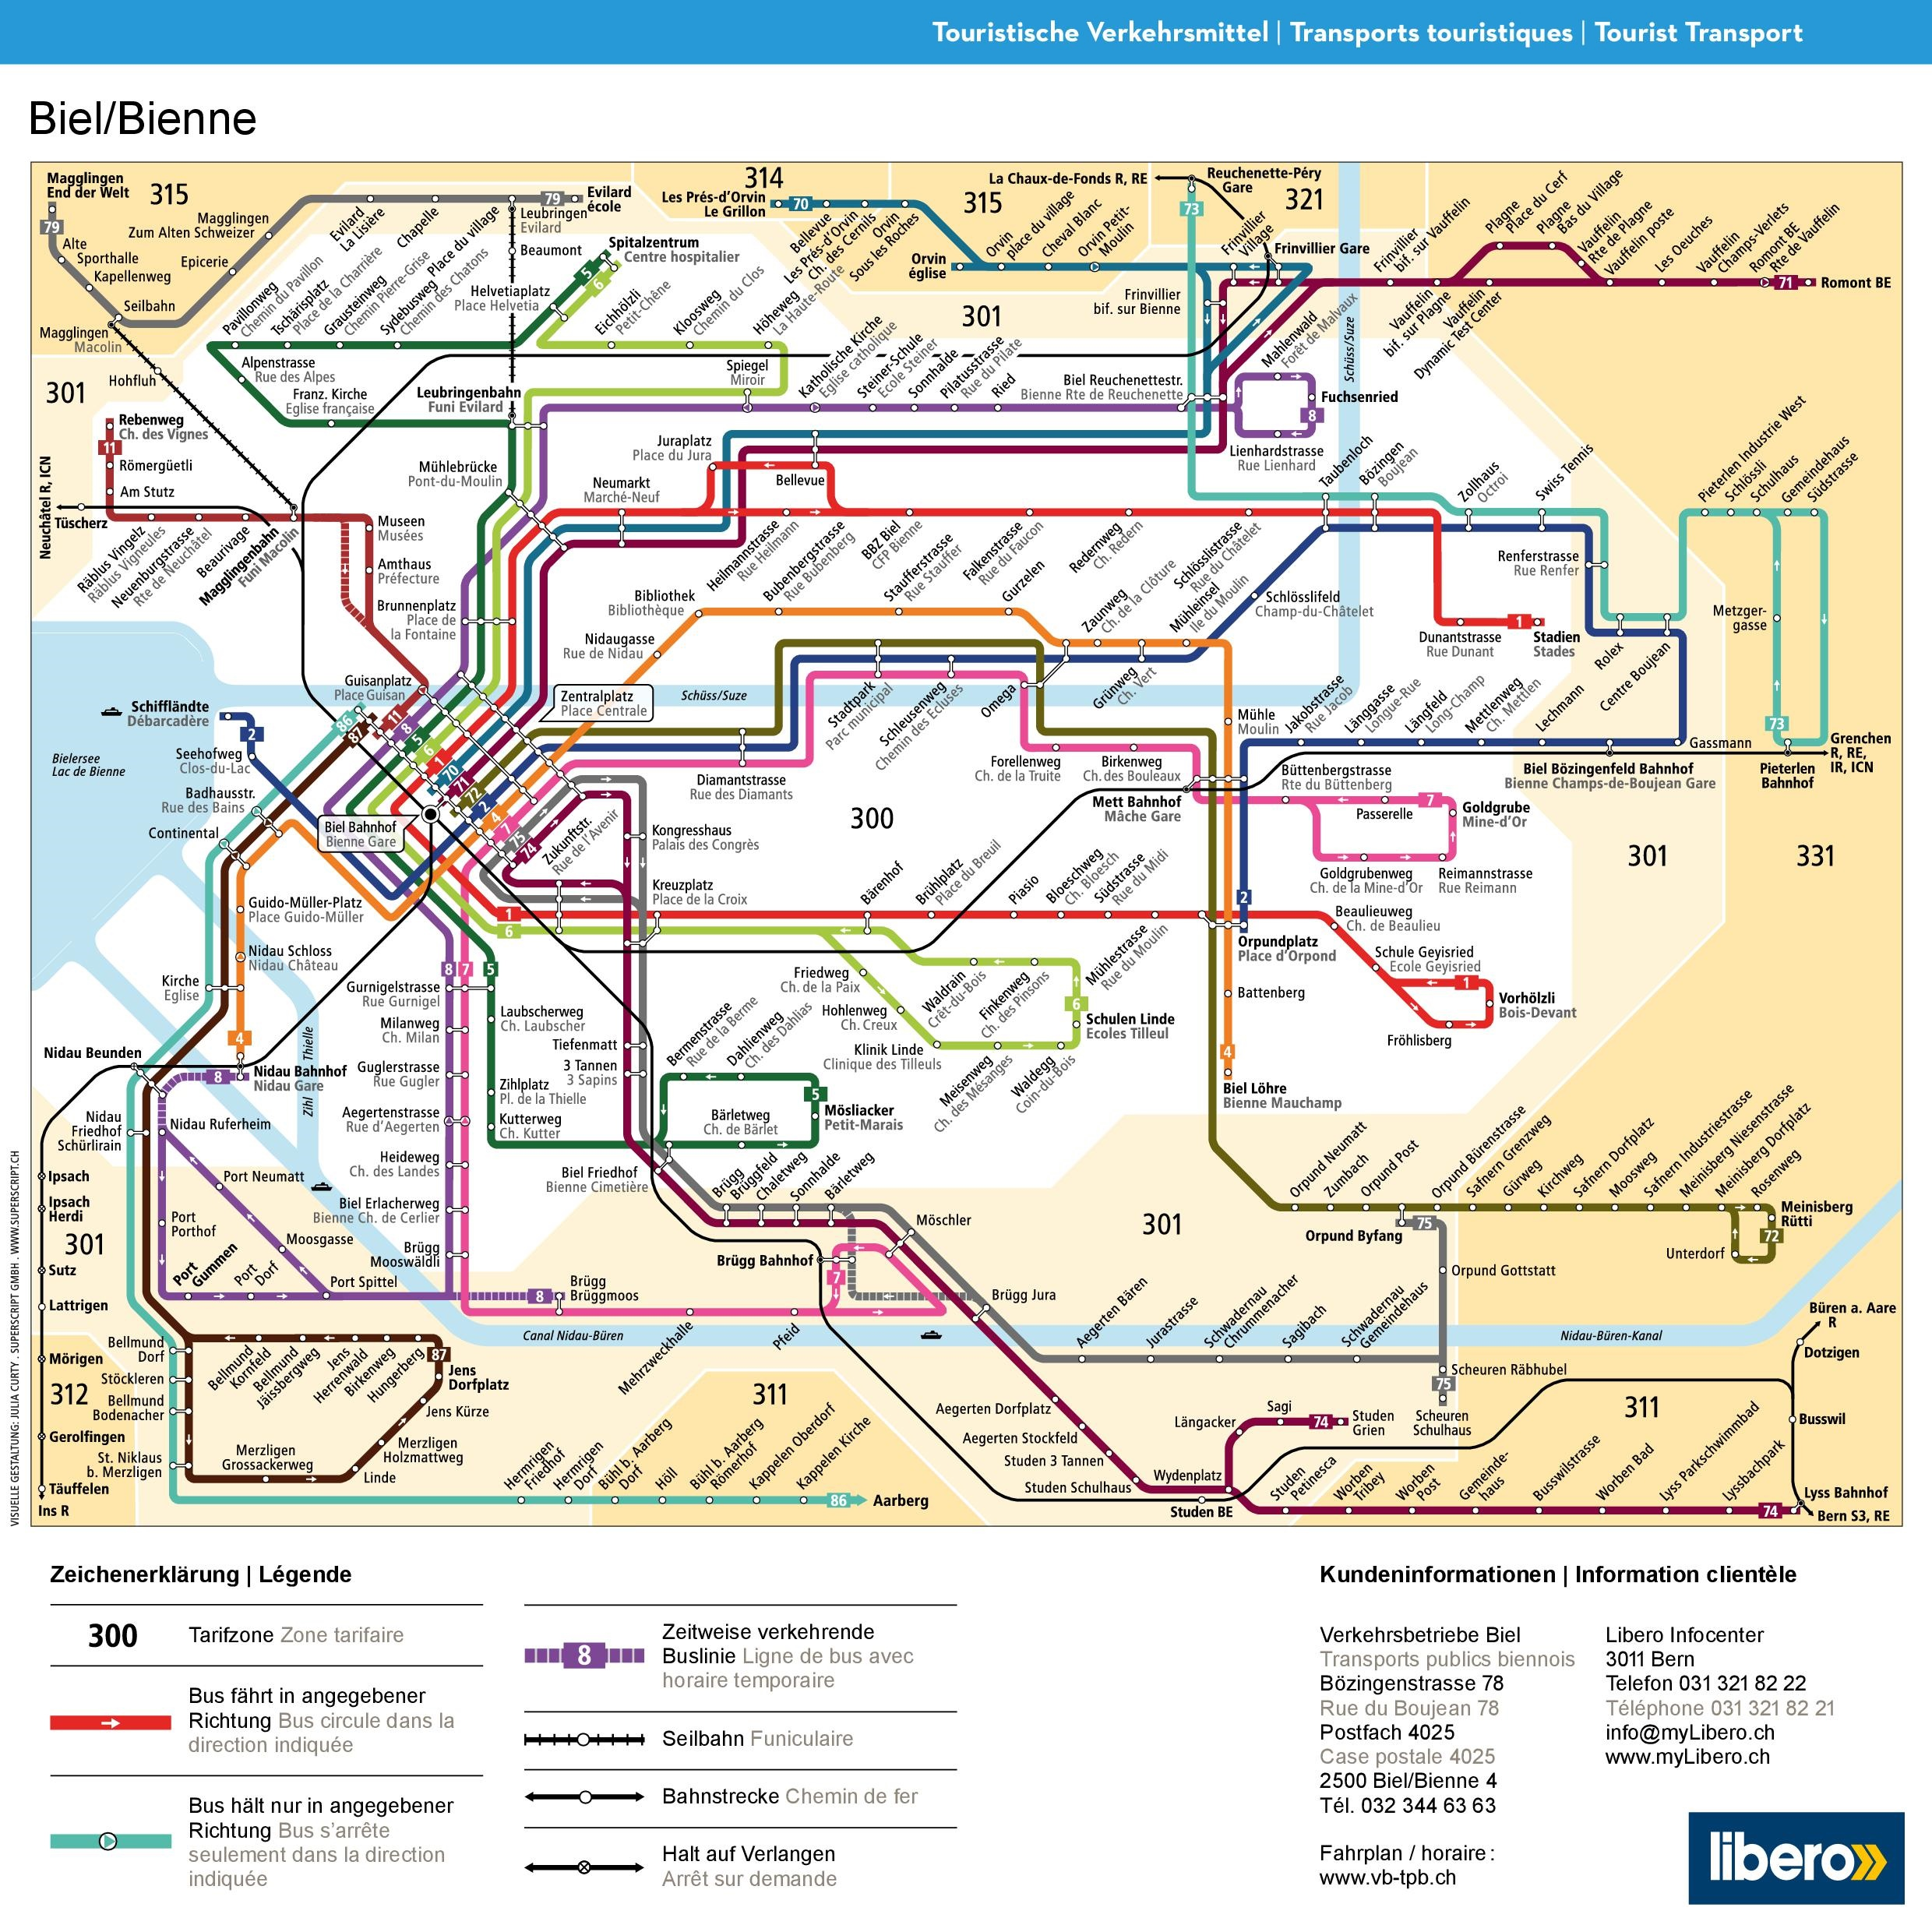 BielBienne transport map